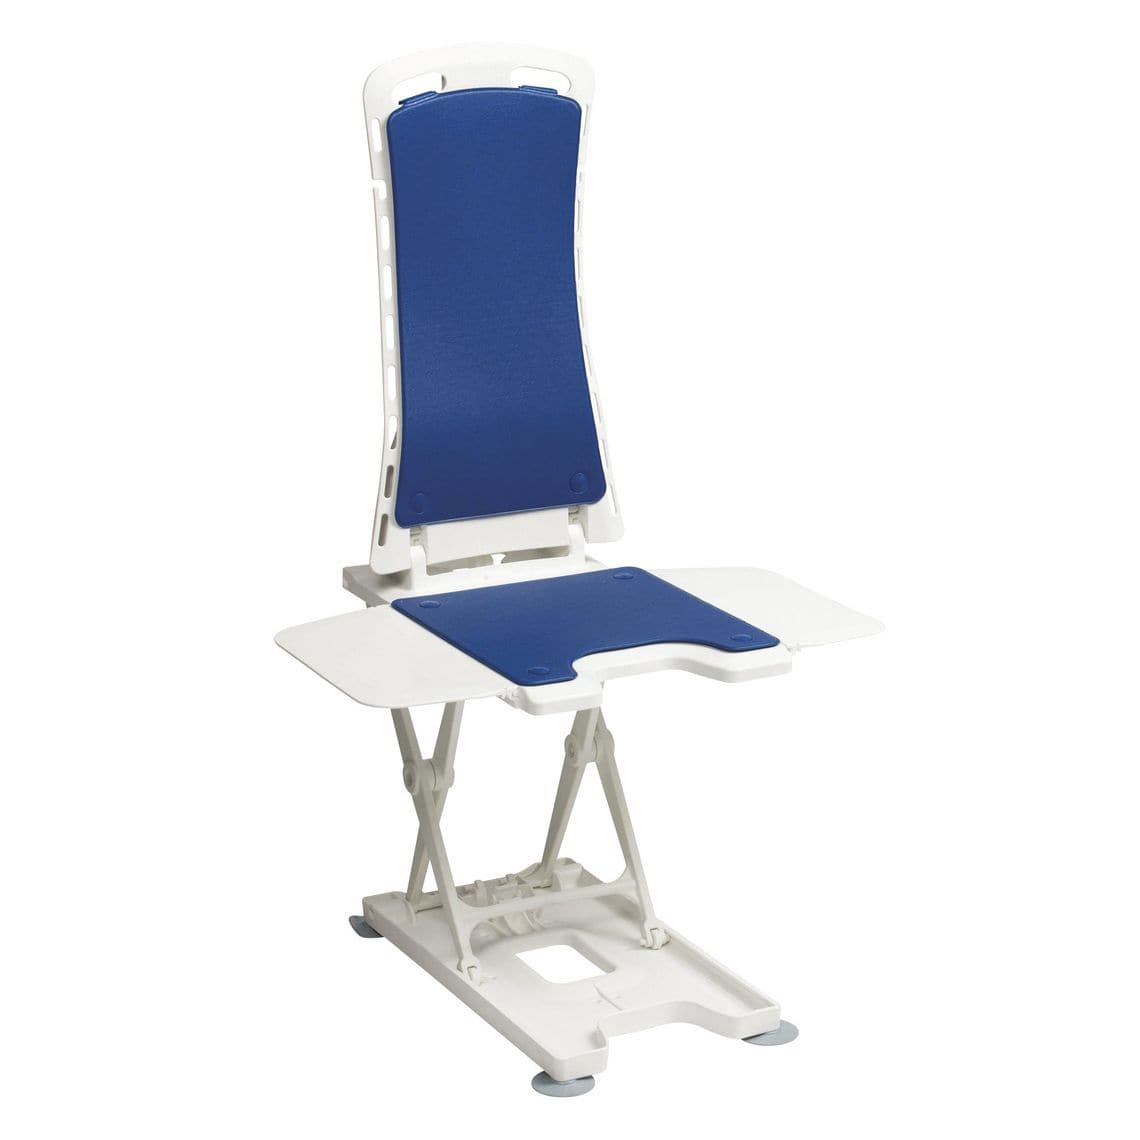 Bath seat / with suction cup - 470100252, 470100100, 470100312 ...